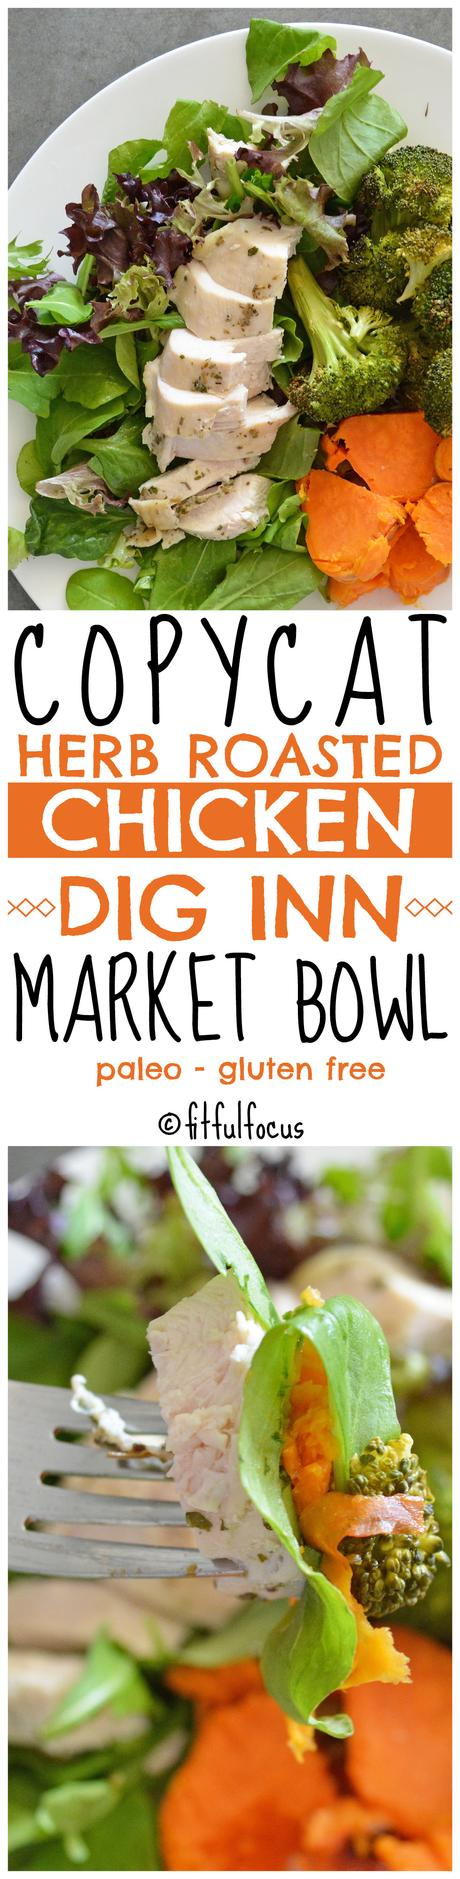 Copycat Herb Roasted Chicken Dig Inn Market Bowl (paleo)